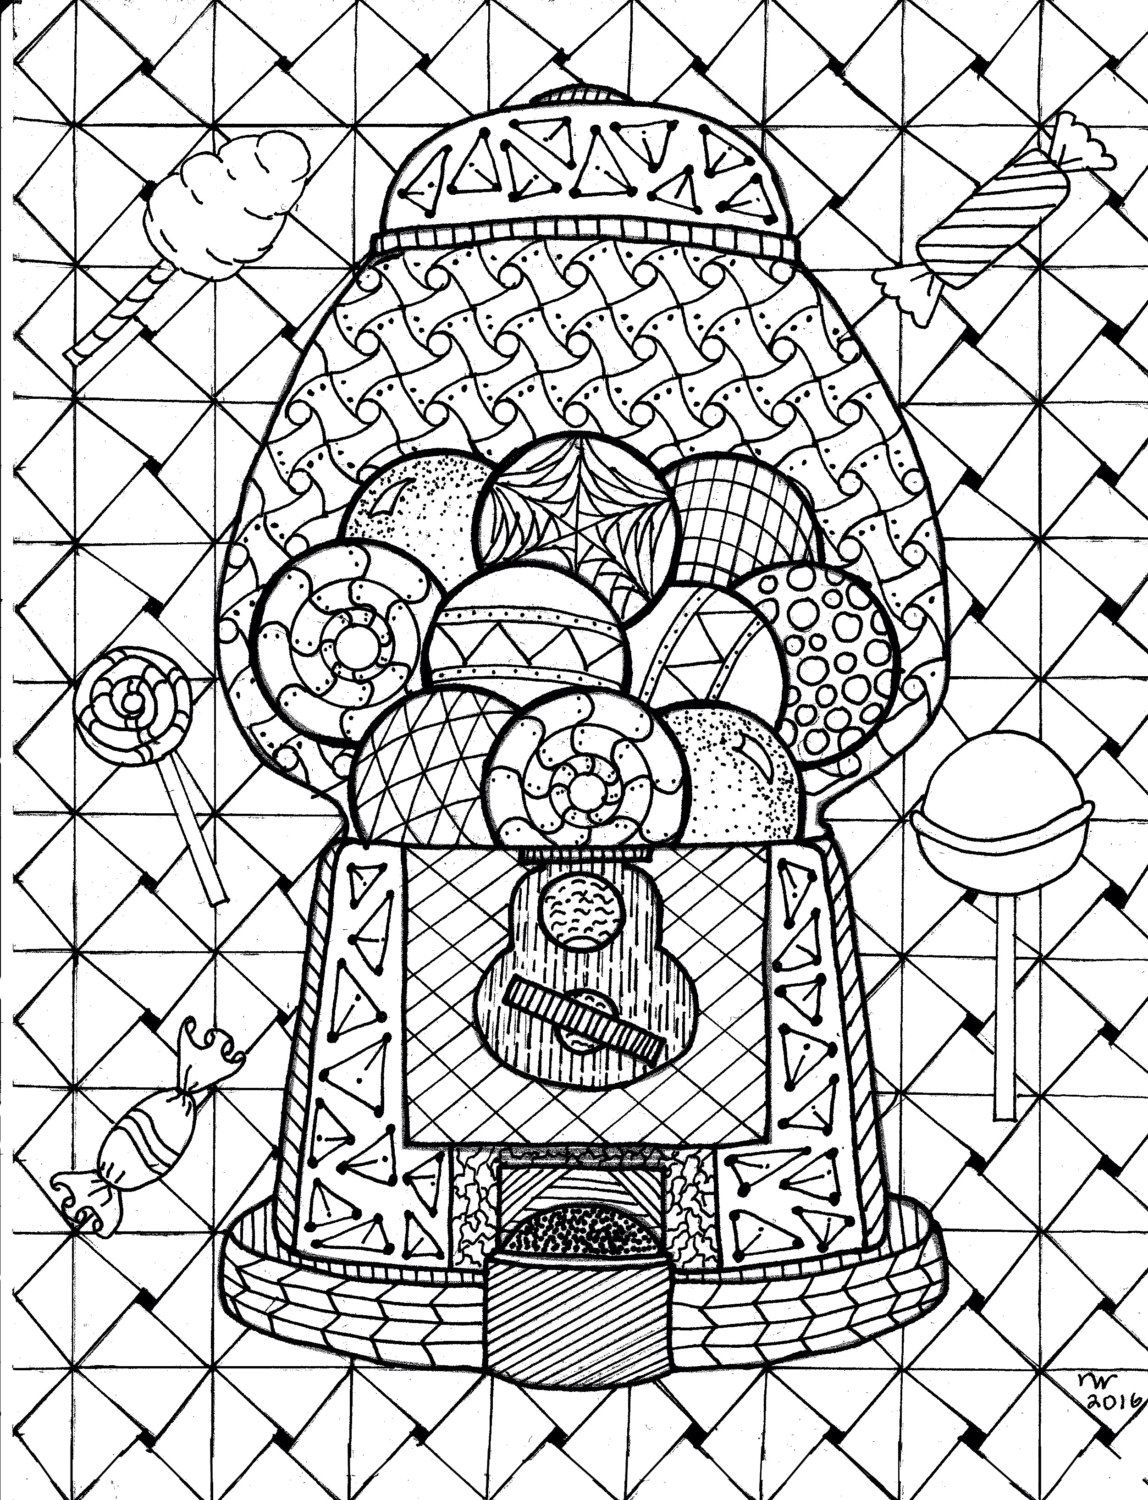 Gumball Machine Zentangle Coloring Page By Inspirationbyvicki On